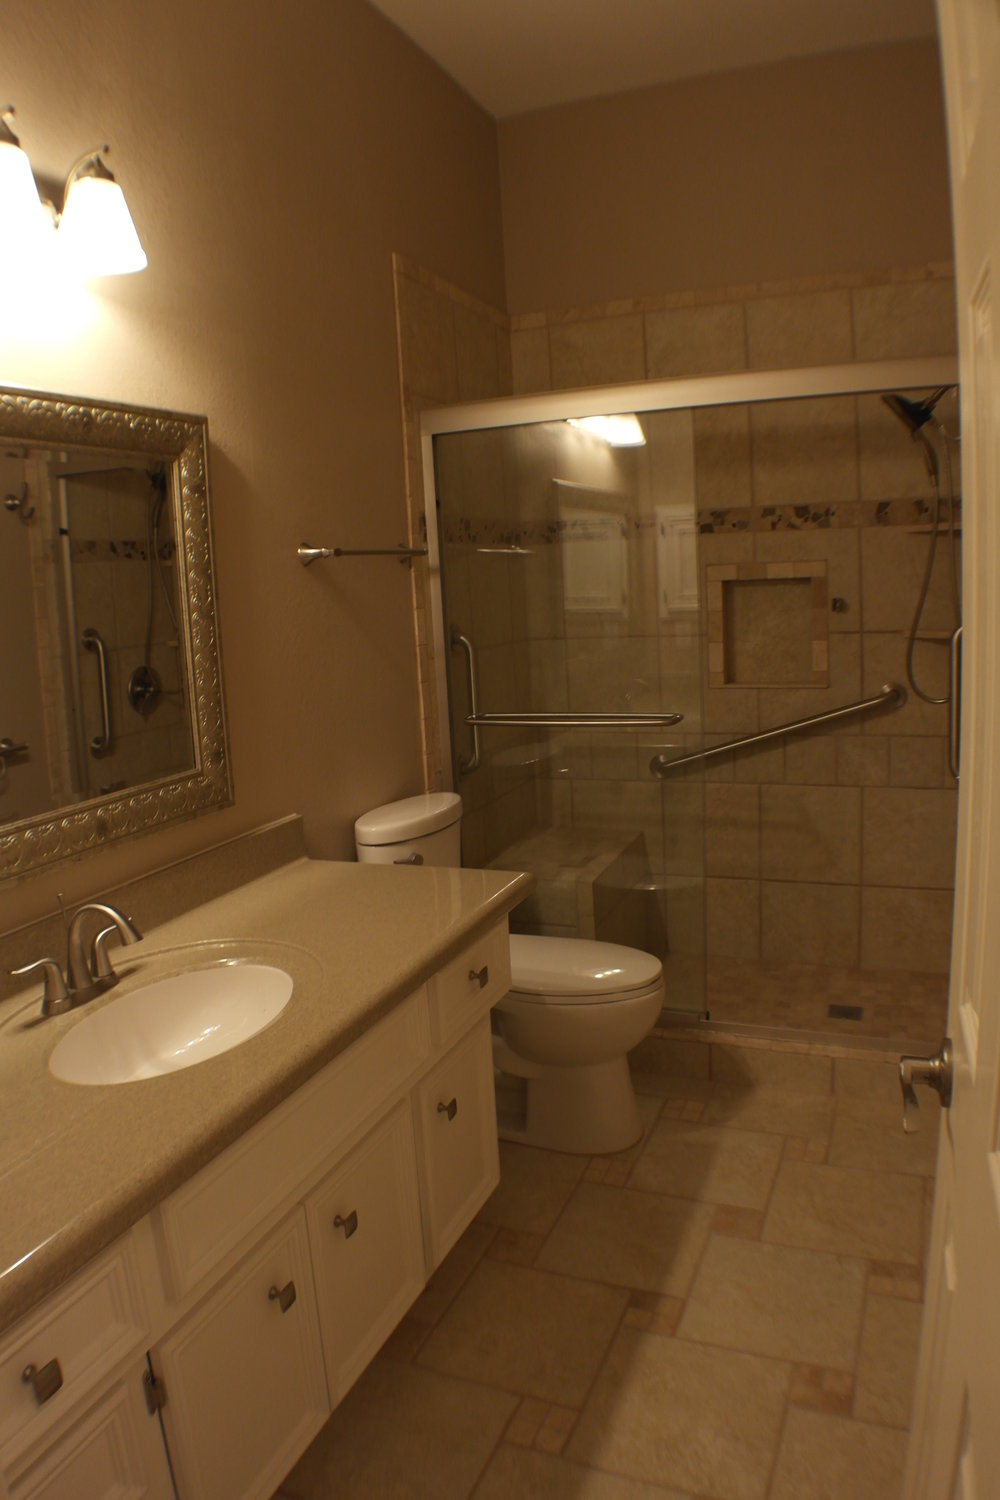 TUBTOSHOWERS CONVERSIONS EZACCESSBATHROOMS.COM 8322028453 COKER 051.JPG